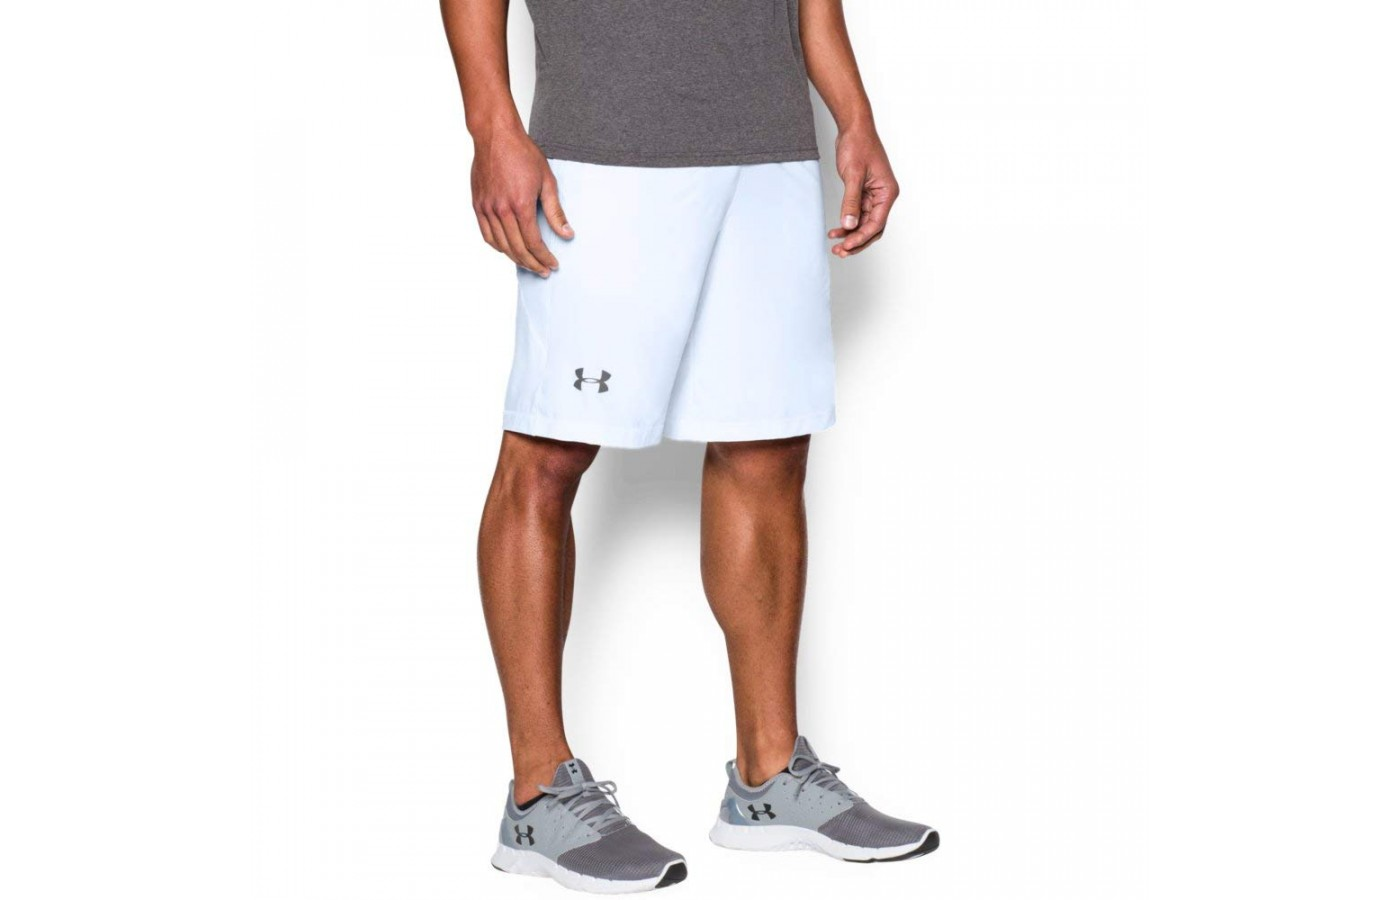 Under Armour Raid Shorts Angled View